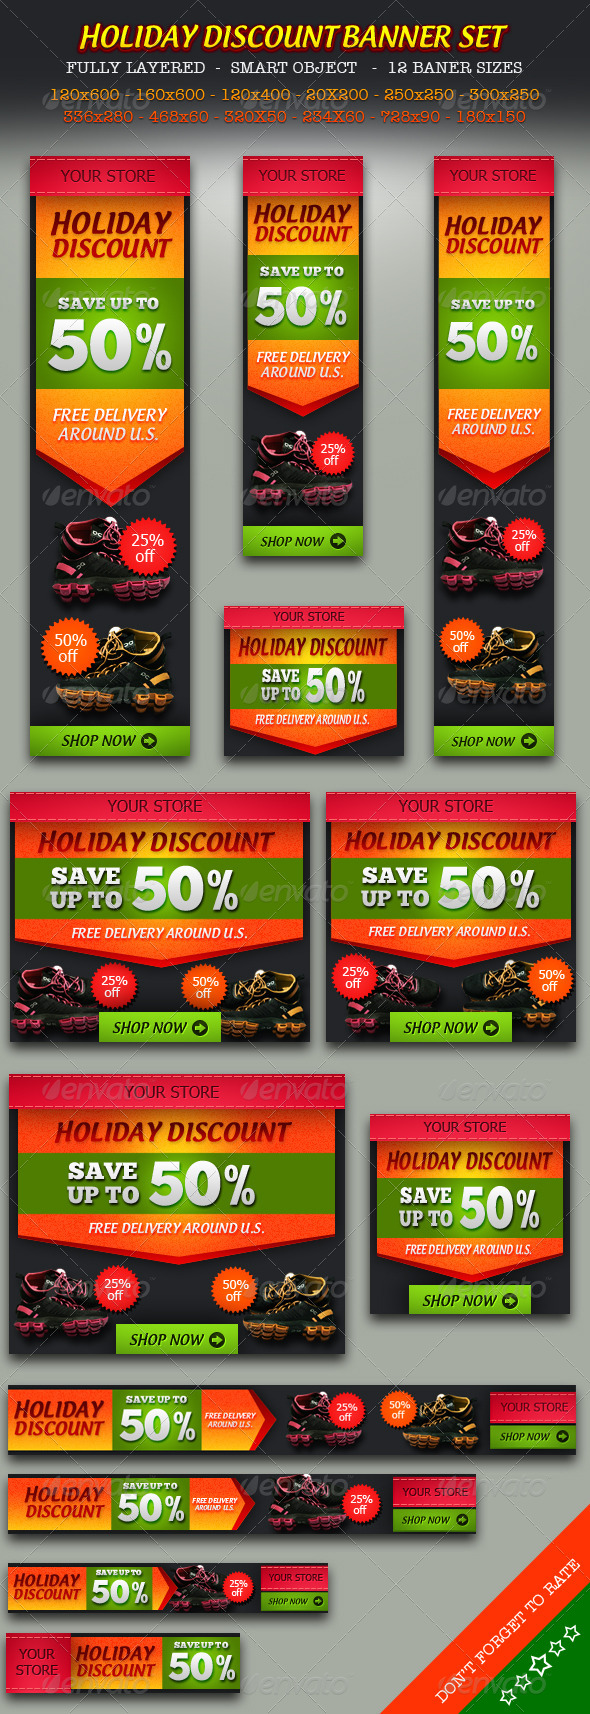 Holiday Discount Online Store Banner ad Set - Banners & Ads Web Elements